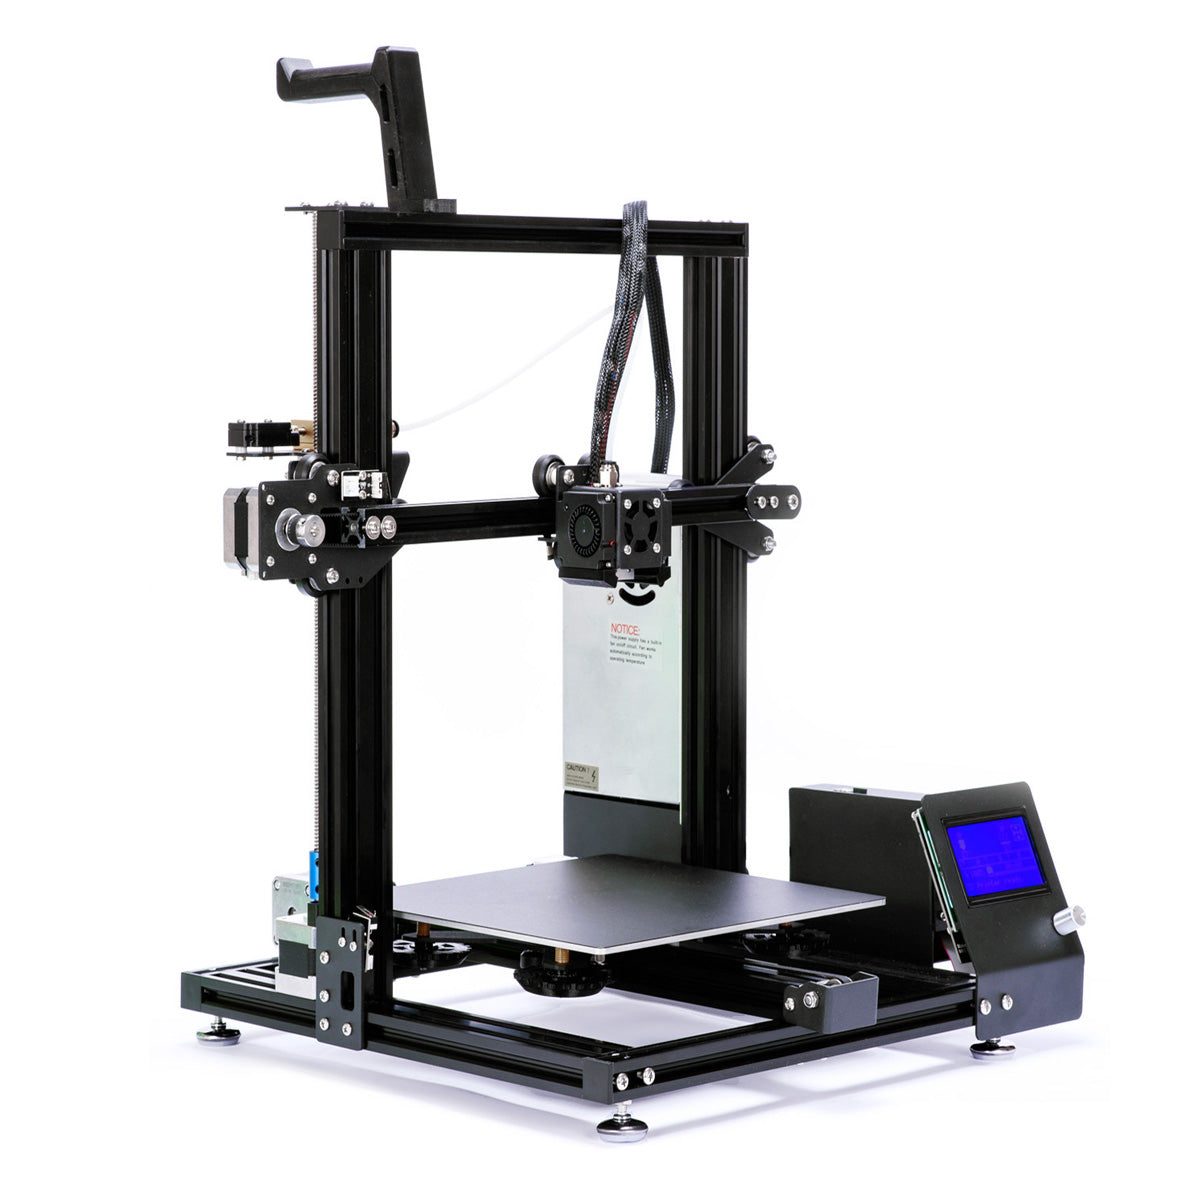 ADIMLab Gantry-S 3D Printer DIY Kit 230*230*260mm Printing Size Support Power Resume/Filament Run-out Detector w/ Metal Extruder & 3 Fans for V6 Type Hot End